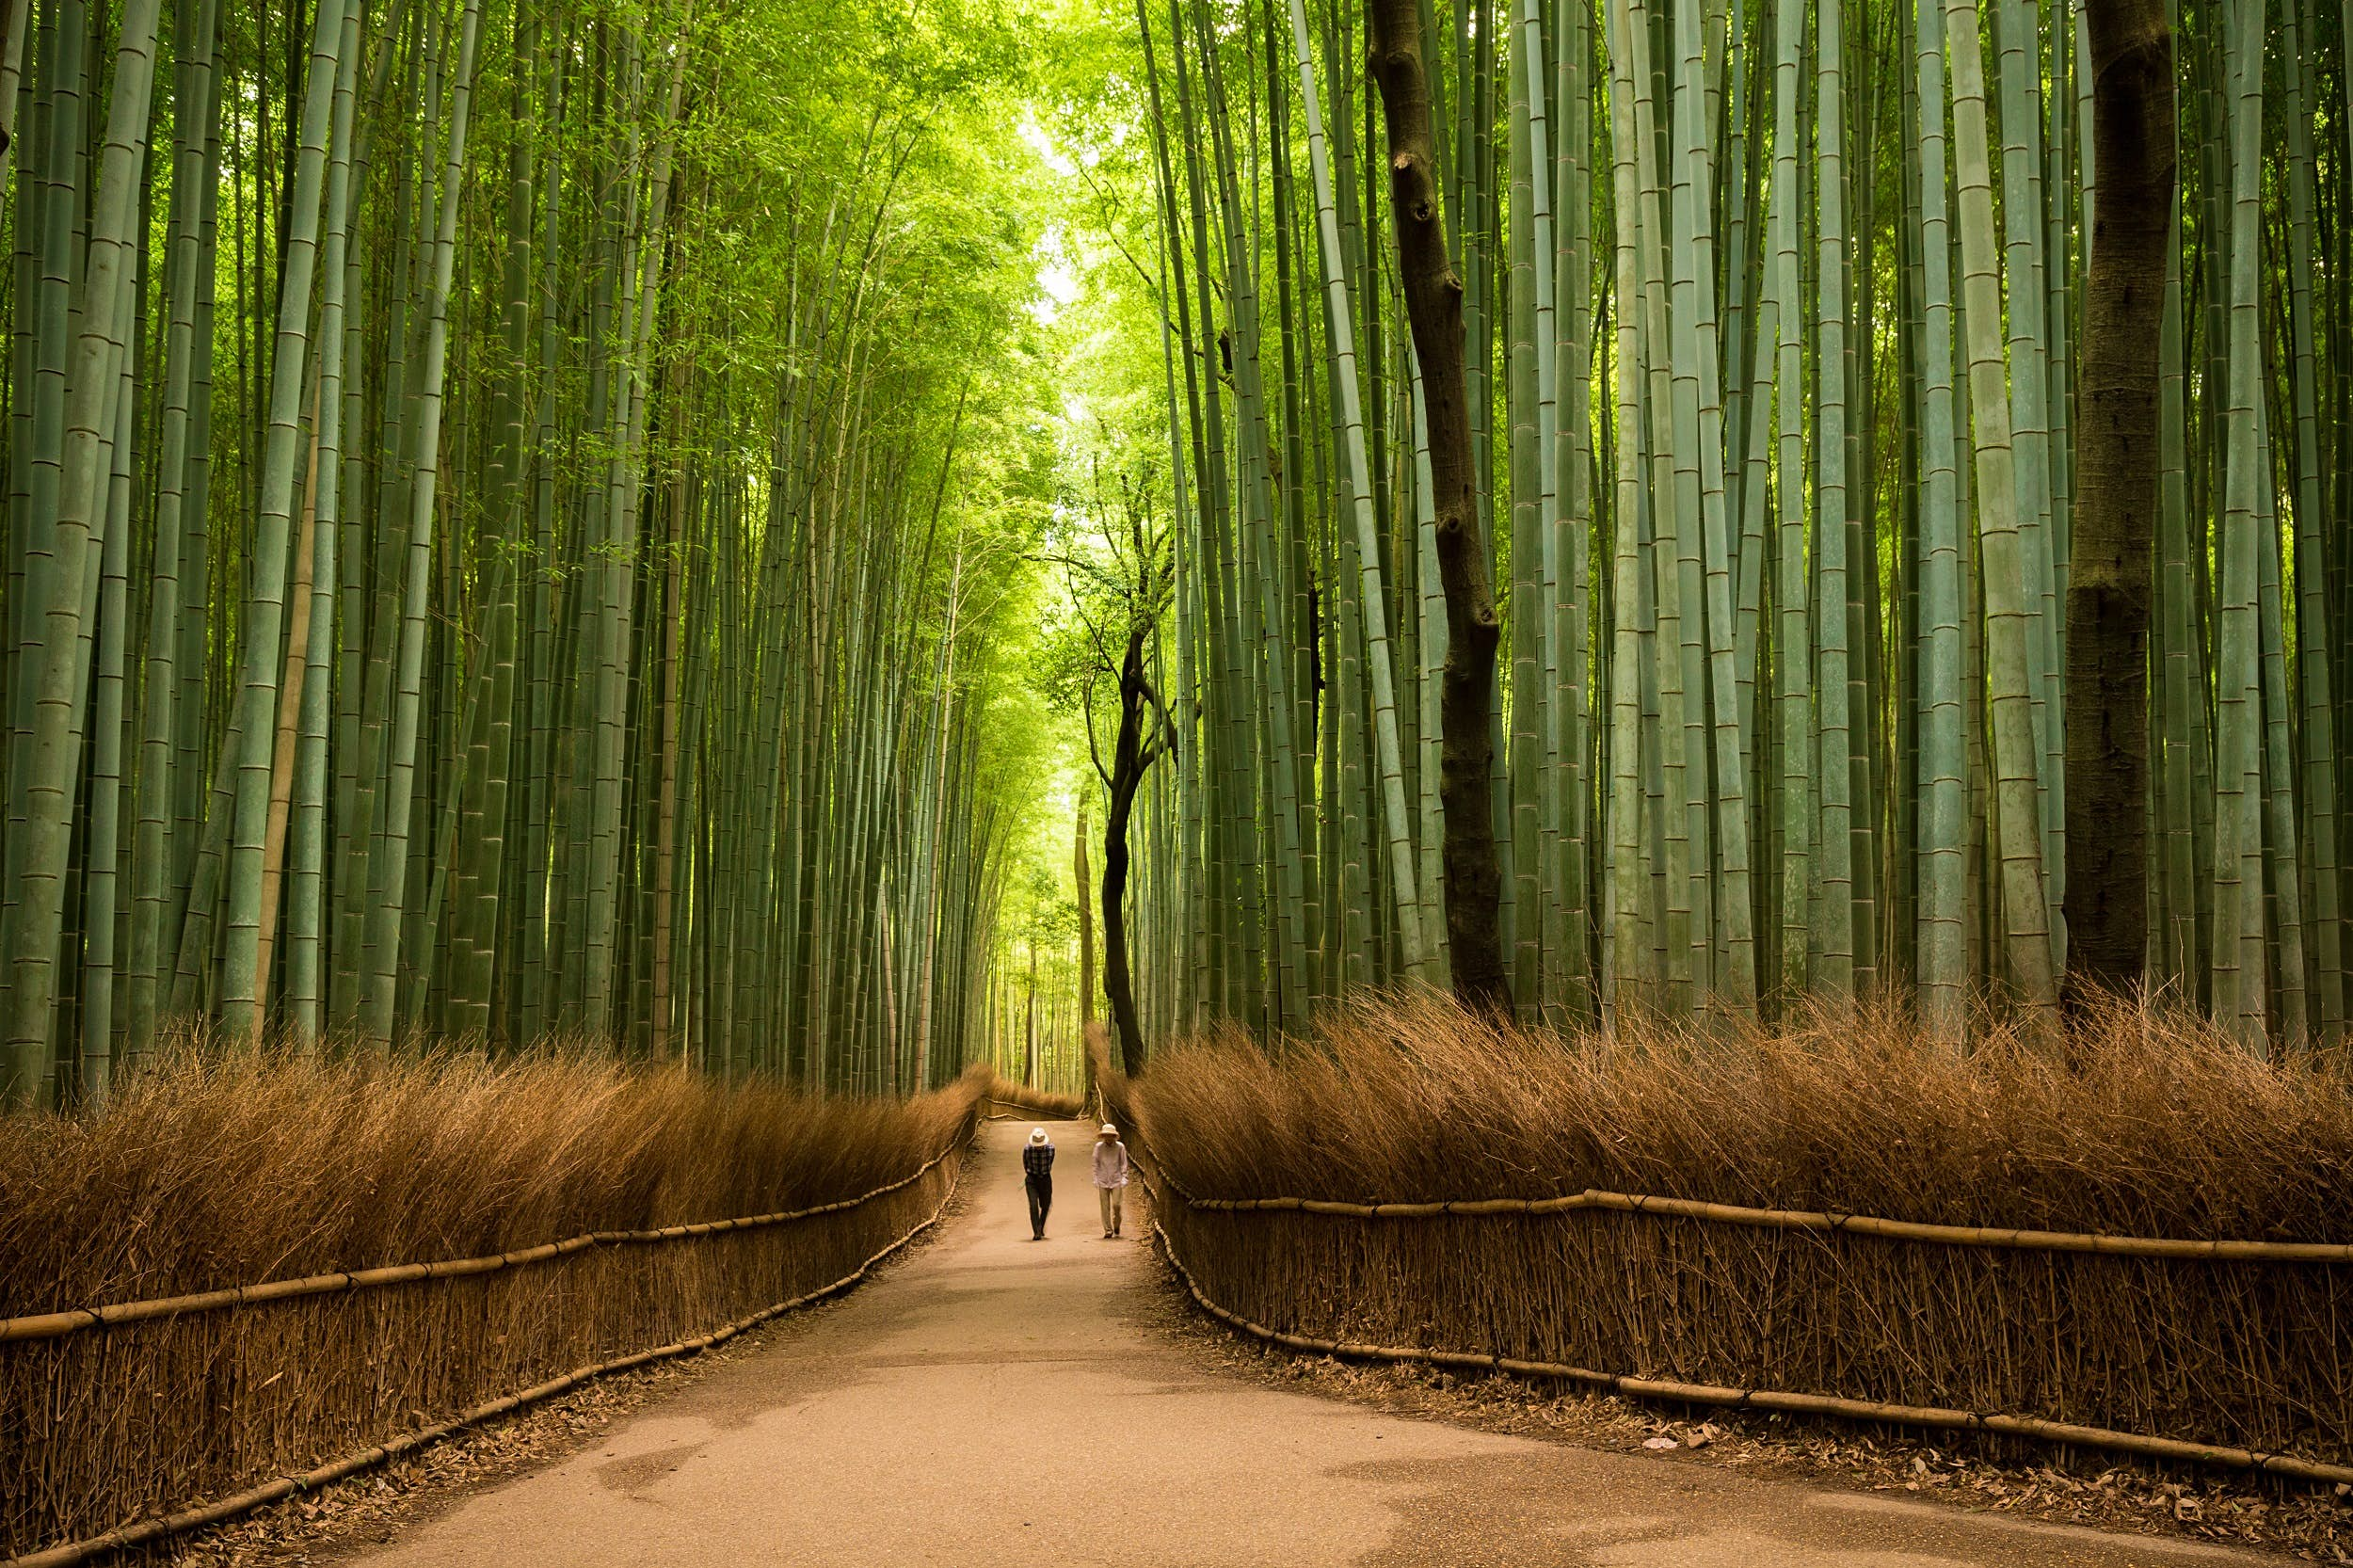 A narrow path, flanked on both sides by towering stands of bamboo, stretches into the distance.